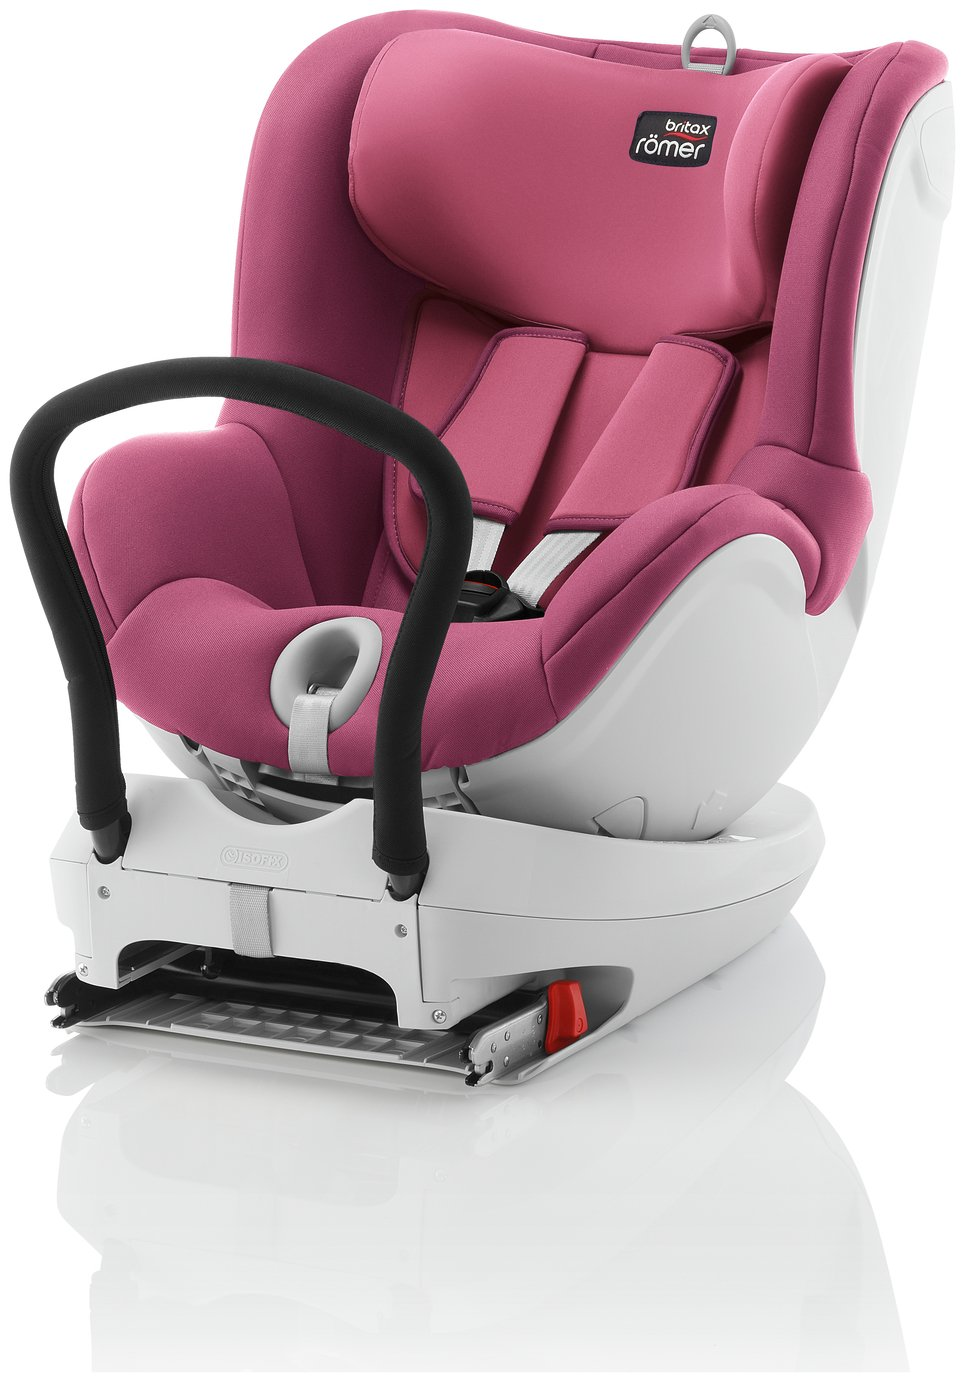 review of britax romer dualfix group 0 1 car seat wine rose. Black Bedroom Furniture Sets. Home Design Ideas